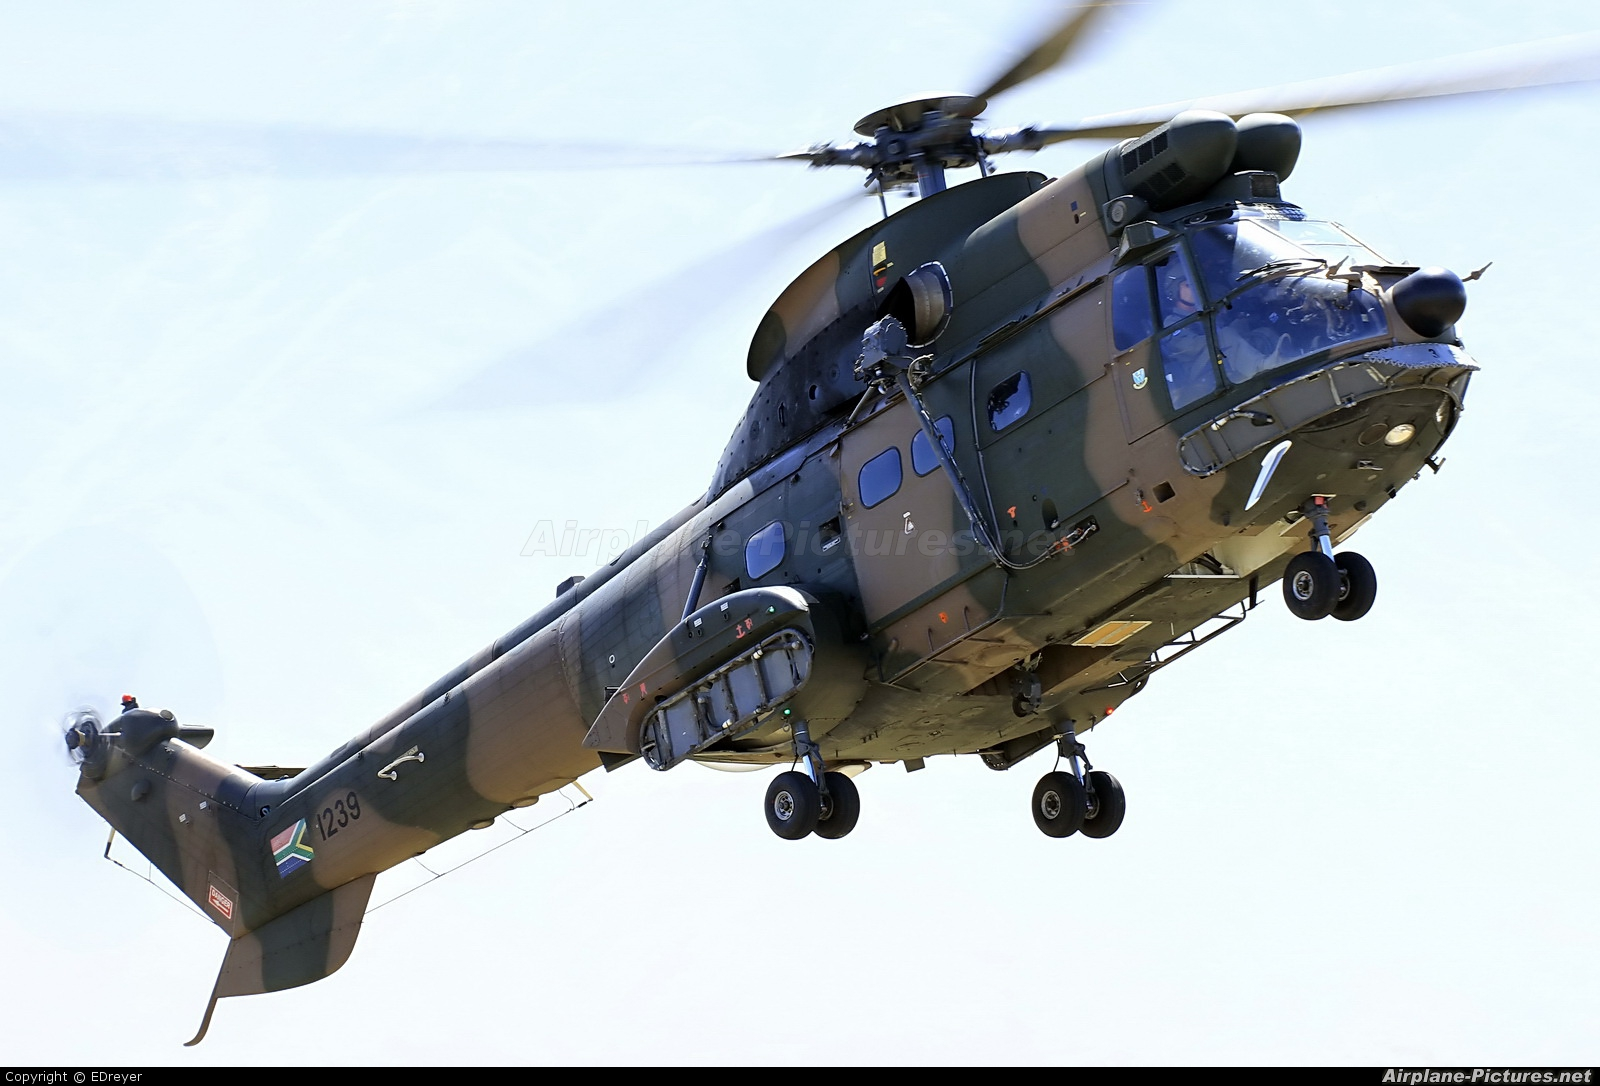 denel helicopter with Saaf 1239 South Africa Air Force Denel Oryx on Gallery military attack helicopters further Saaf 1239 South Africa Air Force Denel Oryx furthermore 2010AAD furthermore Showthread further South Africa Wants To Resuscitate Its Arms Industry 139a79ccd551.